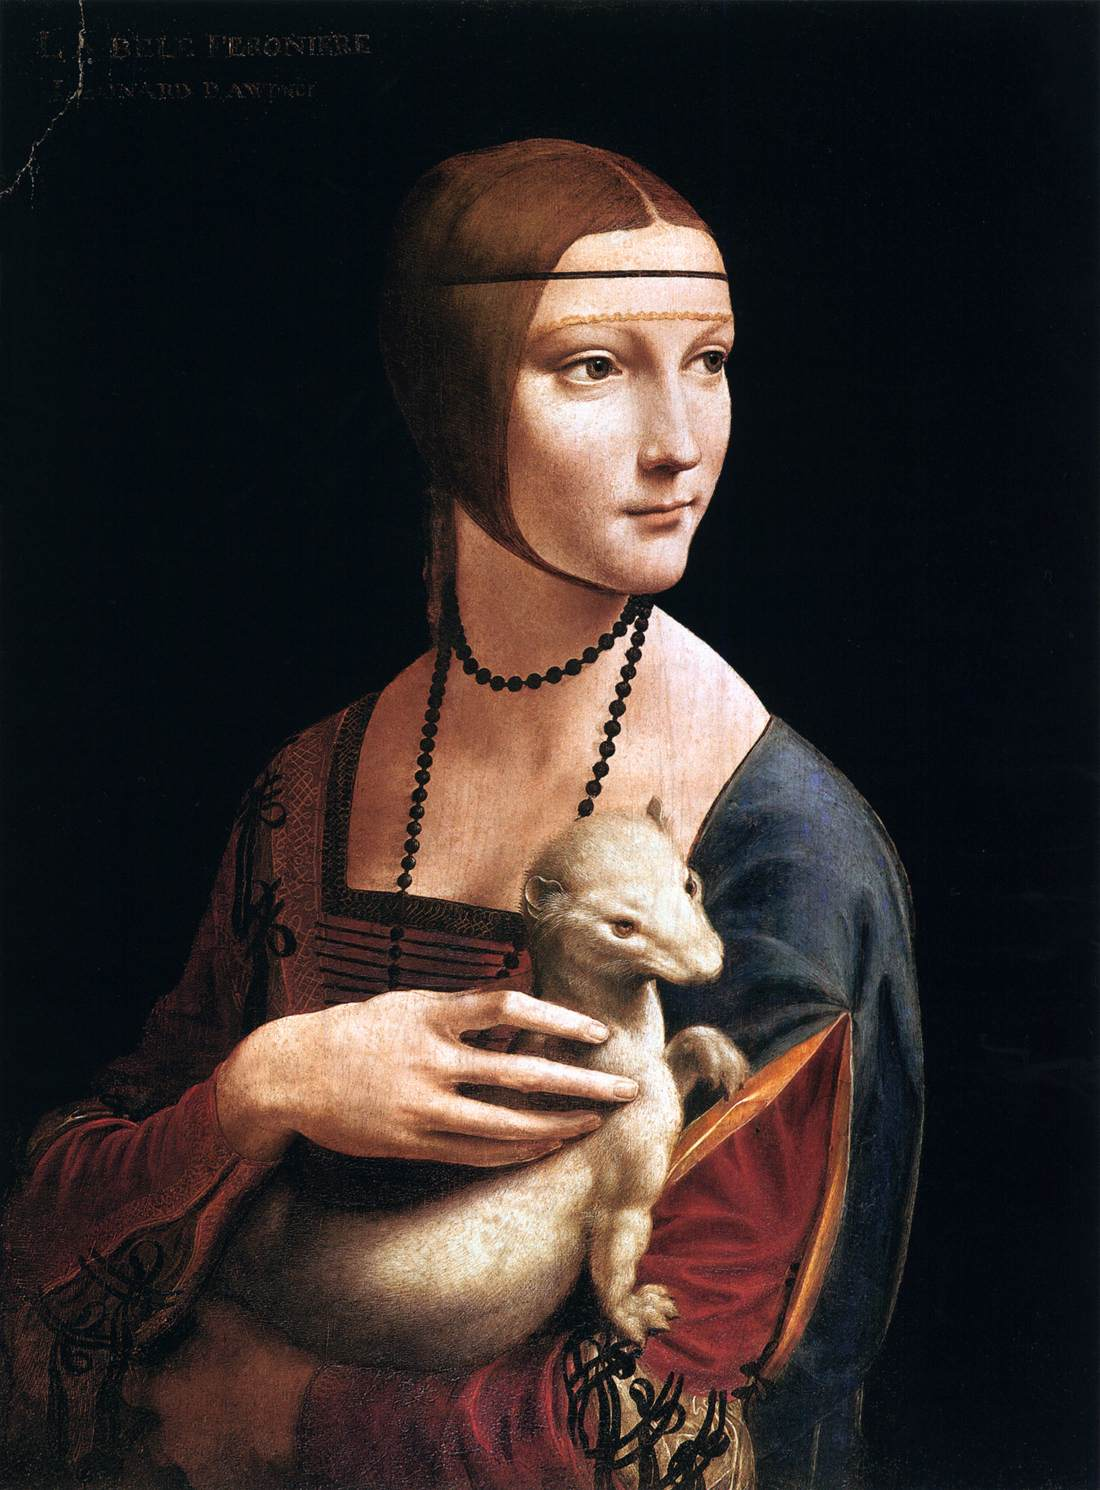 Lady with an Ermine (Cecilia Gallerani) (1489–90) by Leonardo da Vinci. As reproduced in The Art Musuem